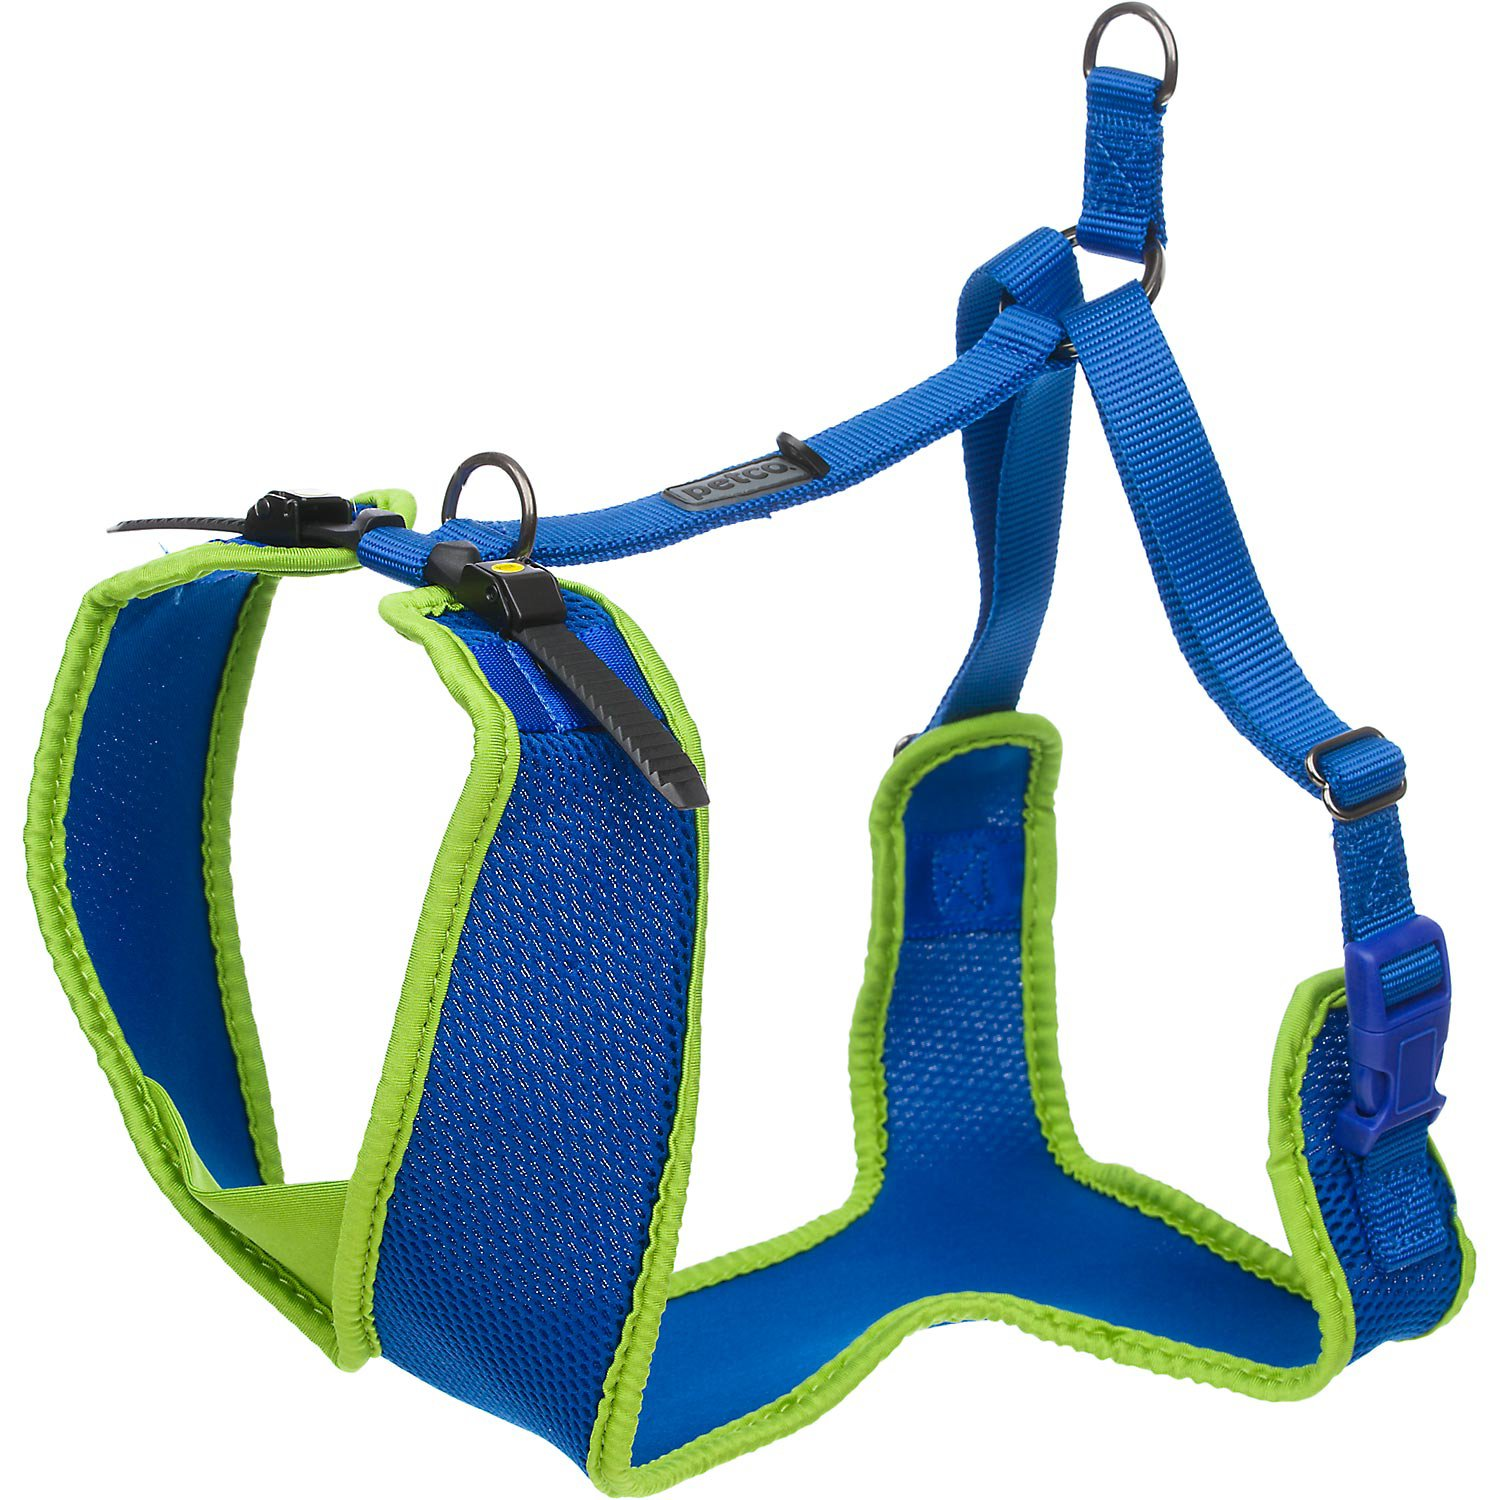 Petco Adjustable Mesh Harness for Big and Tall Dogs in Blue & Green